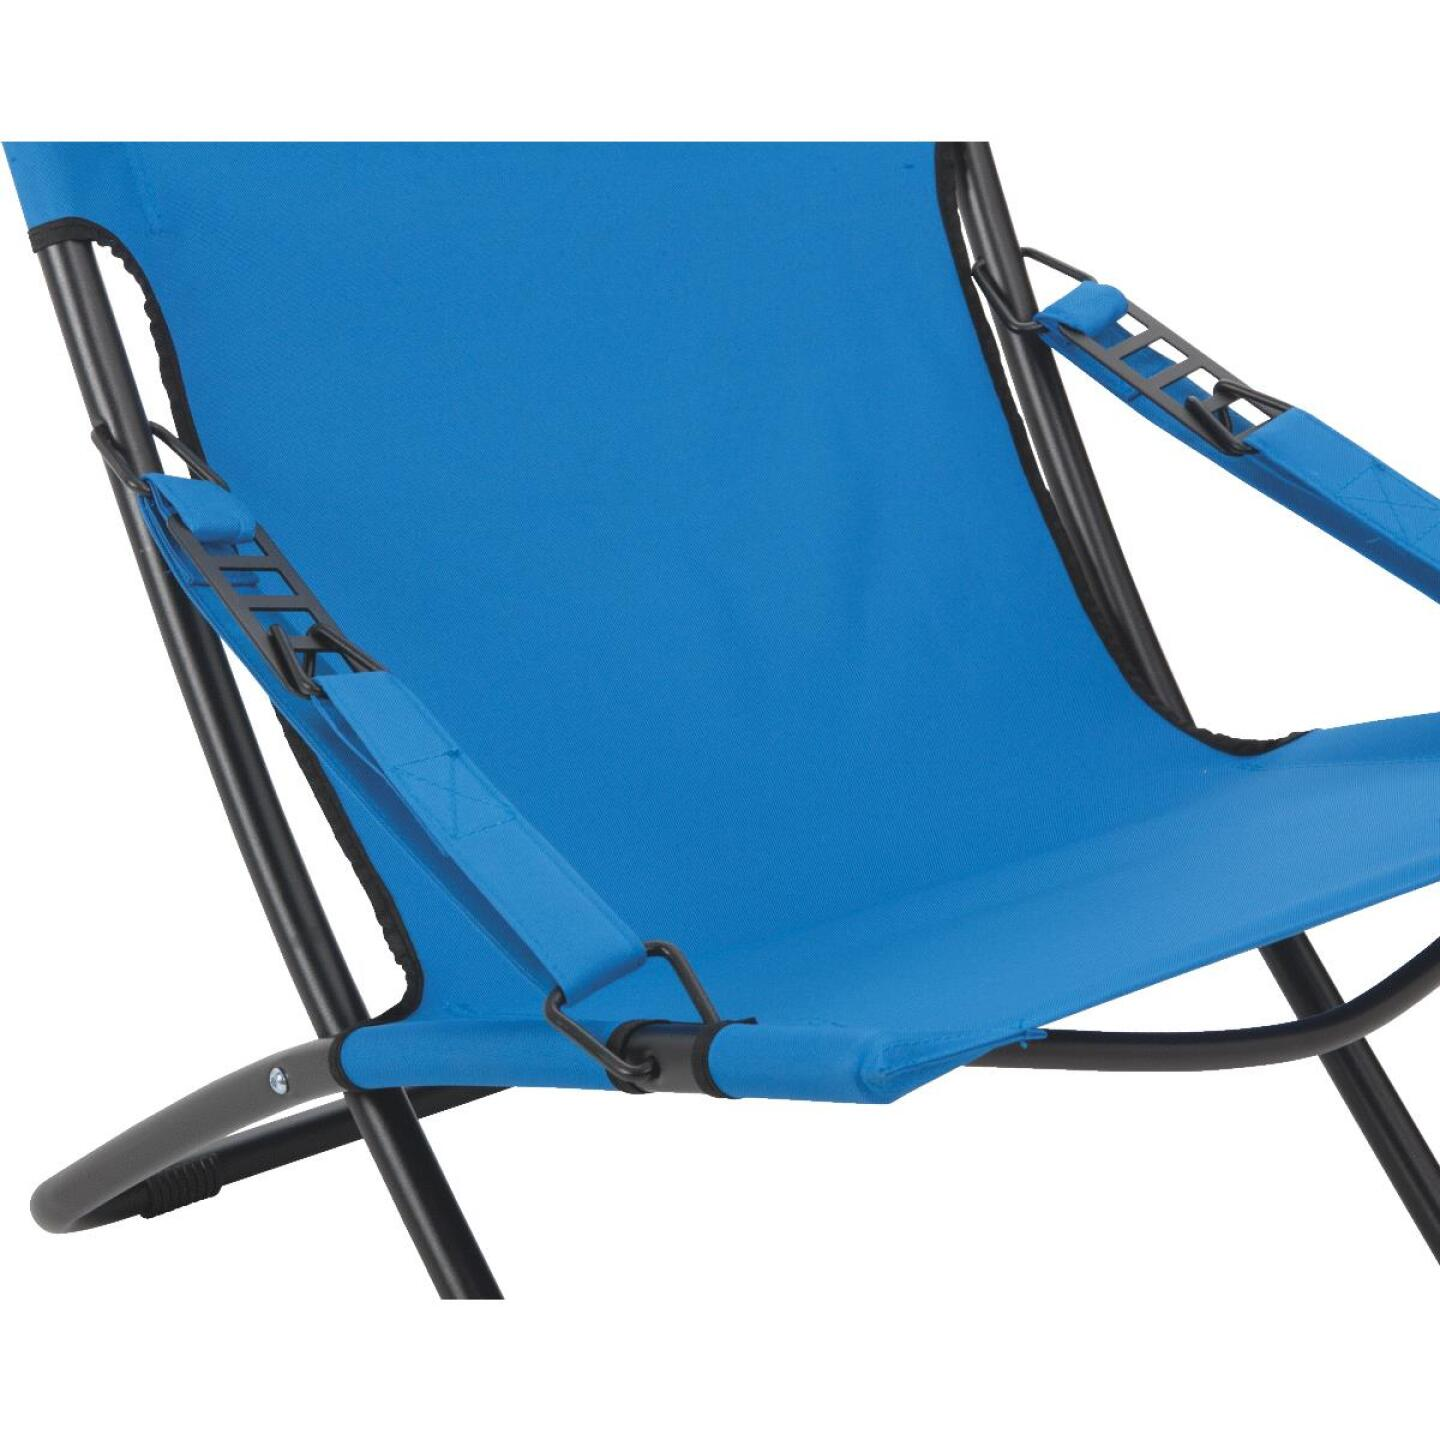 Outdoor Expressions Folding Blue Hammock Chair with Headrest Image 3